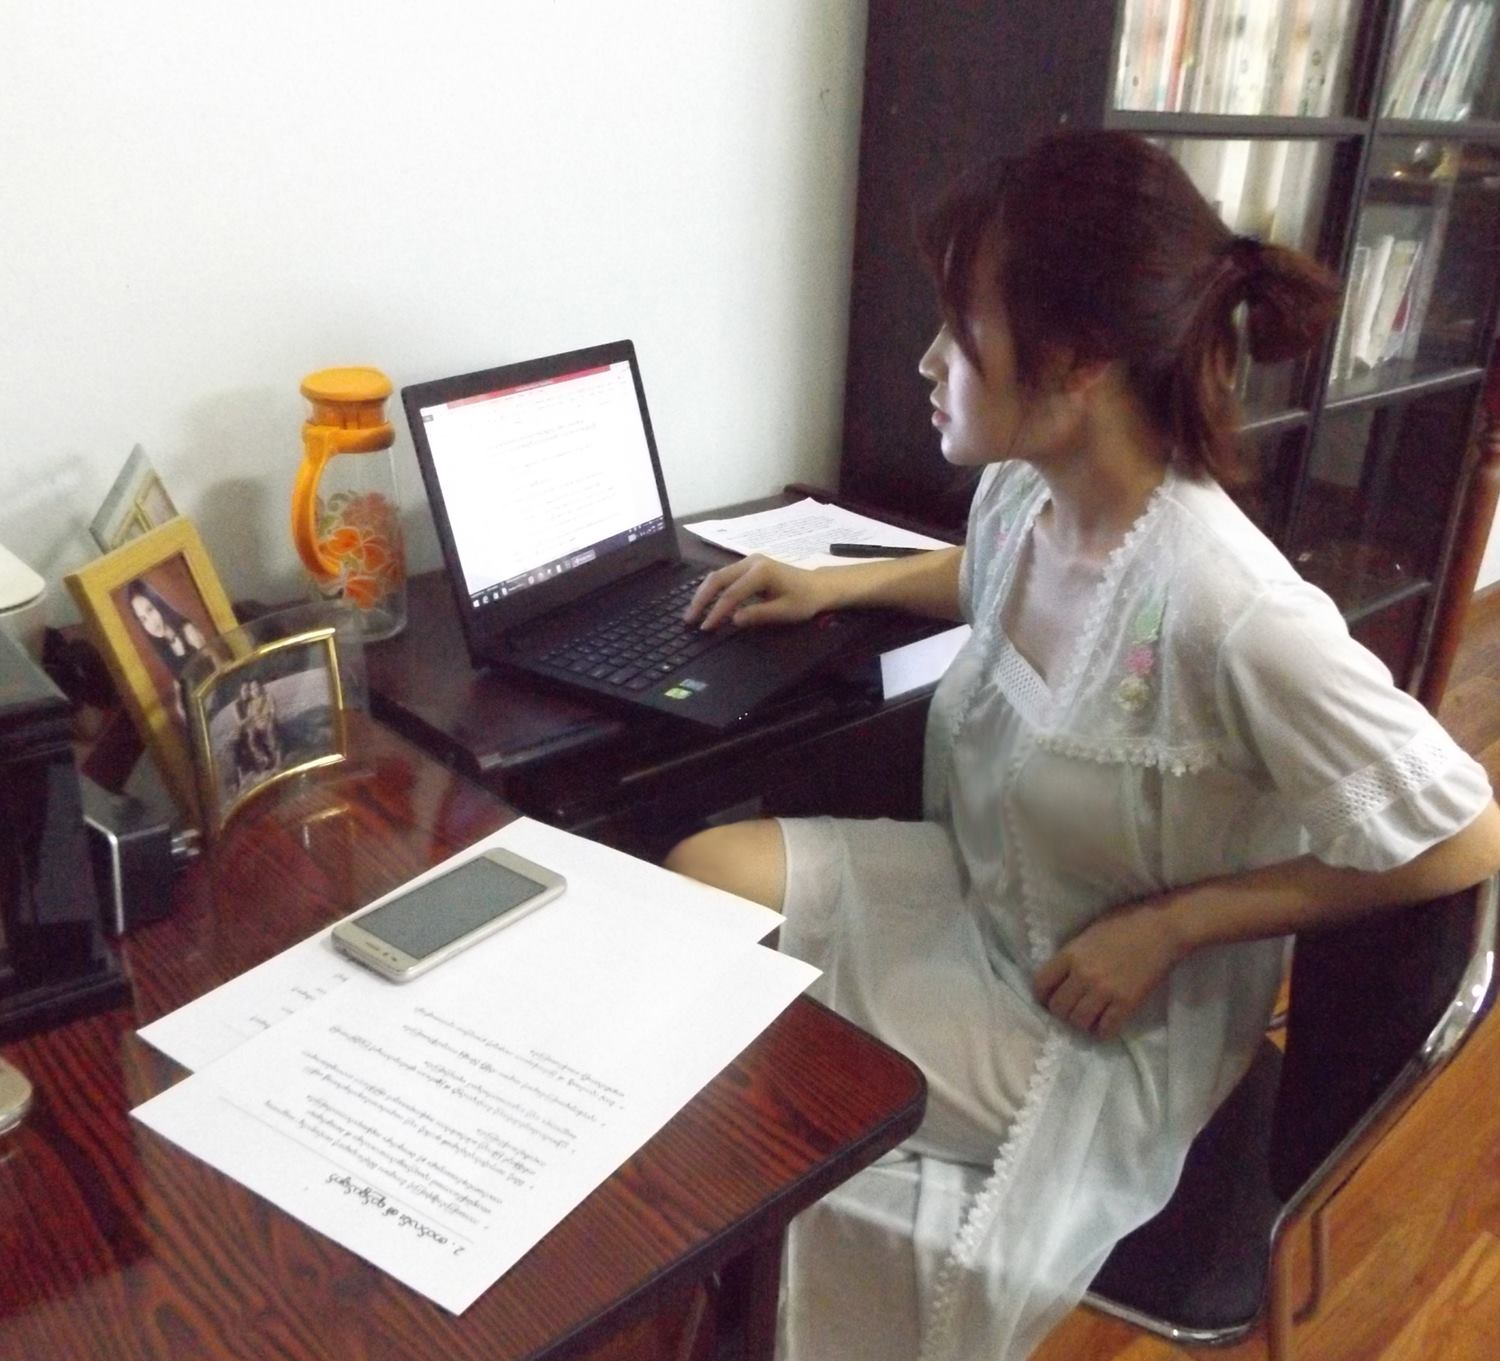 Shwe Yay Htin Htin - This is writing season on her Facebook